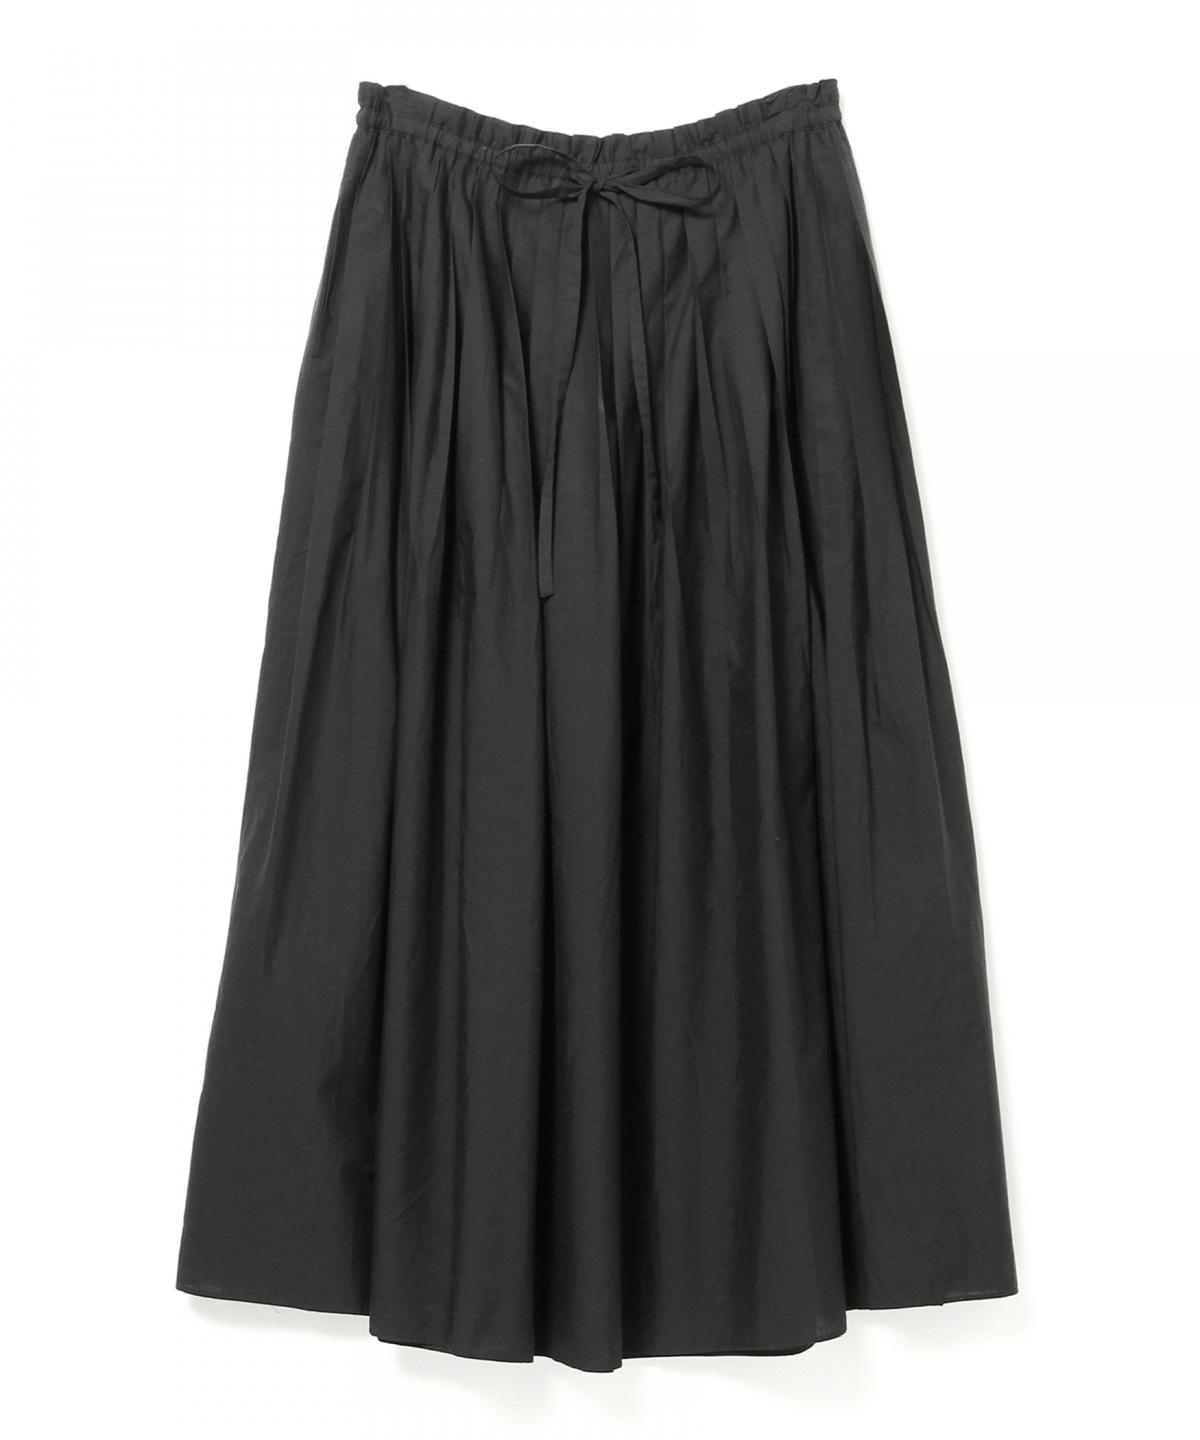 VICKI Pleated Skirt